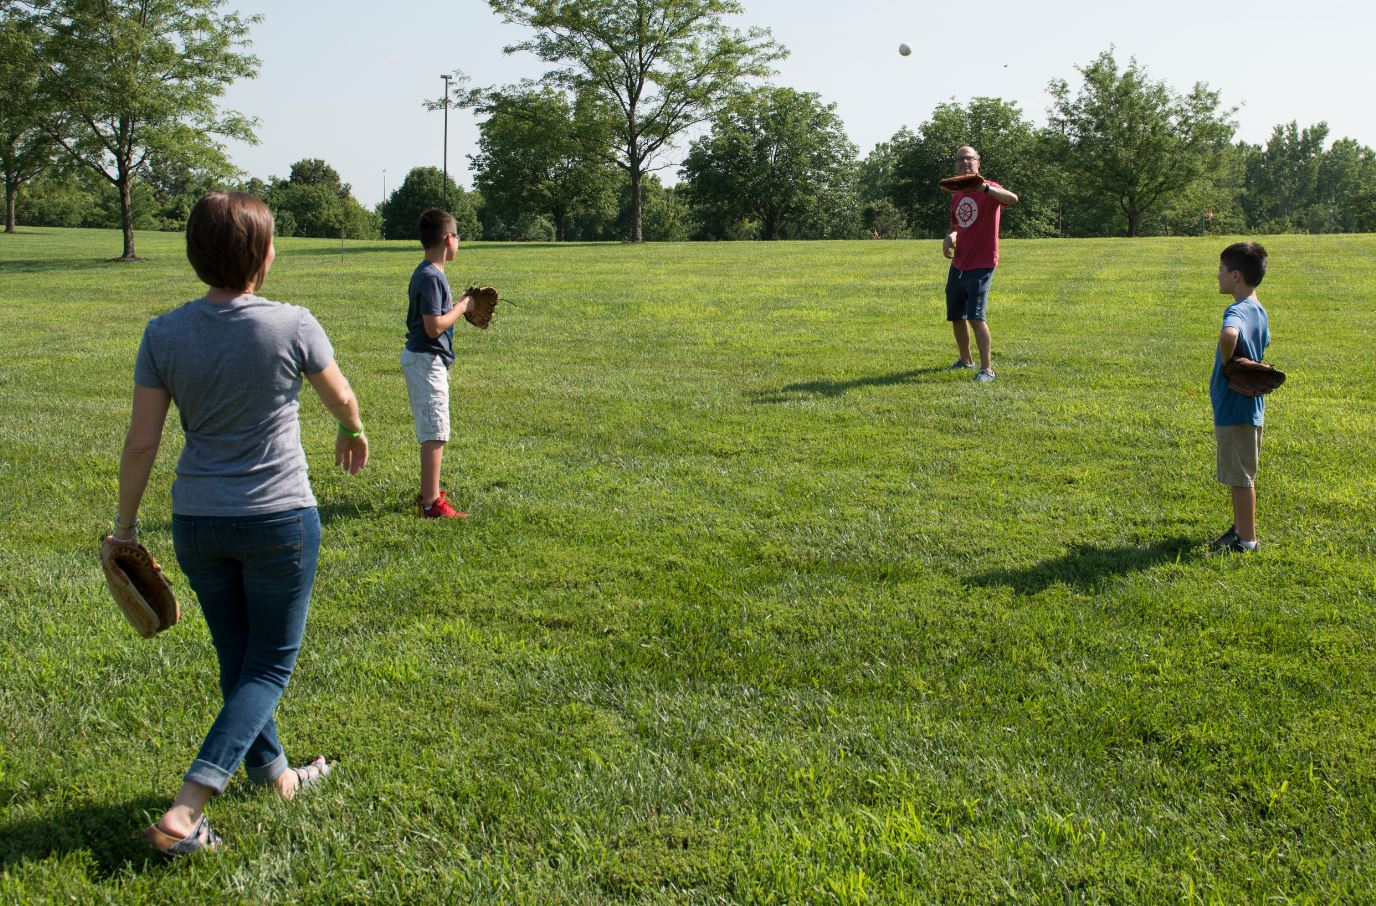 Andrew Widman, heart transplant recipient, playing catch with family